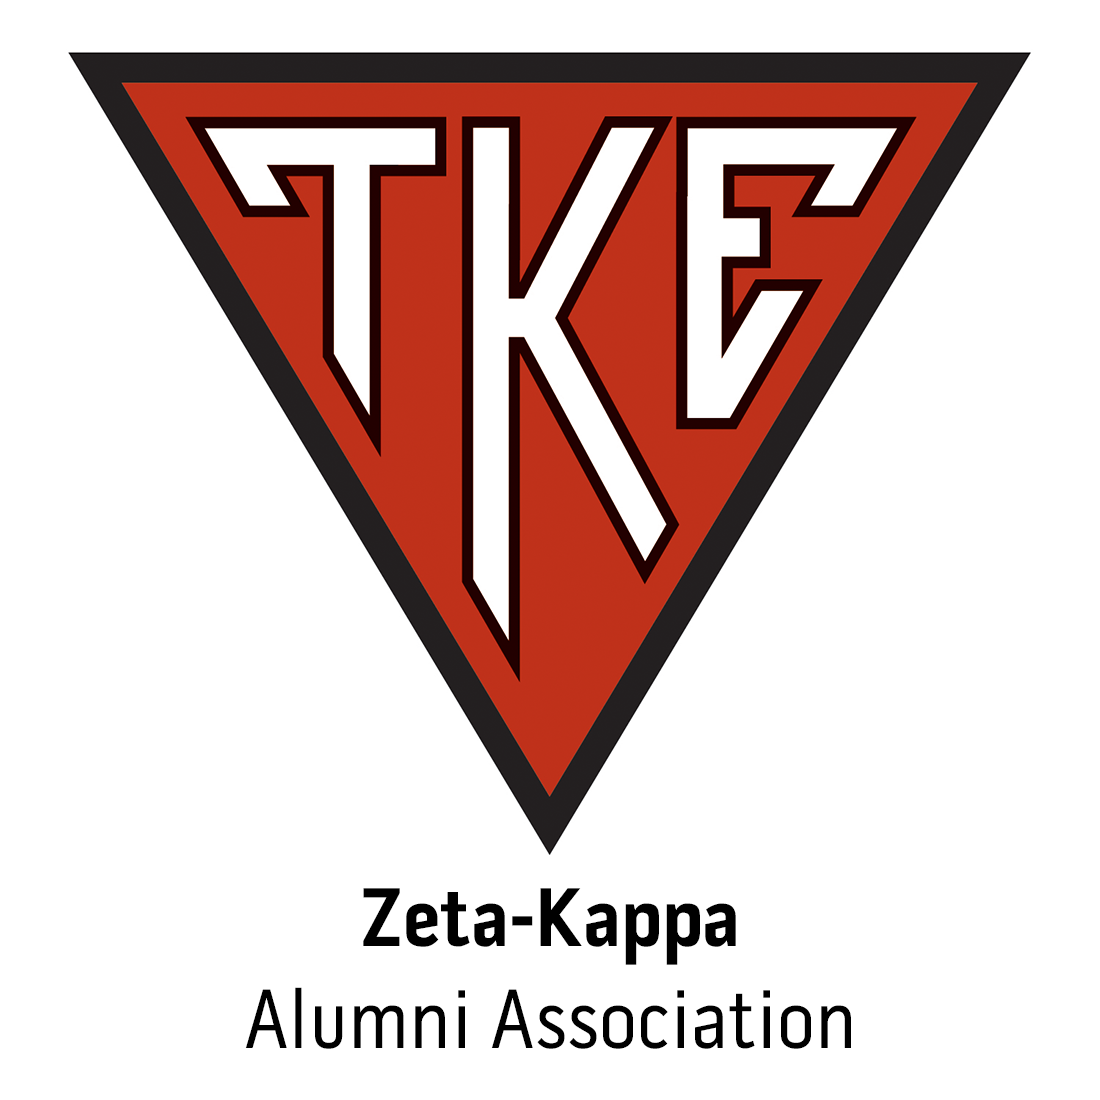 Zeta-Kappa Alumni Association for Portland State University